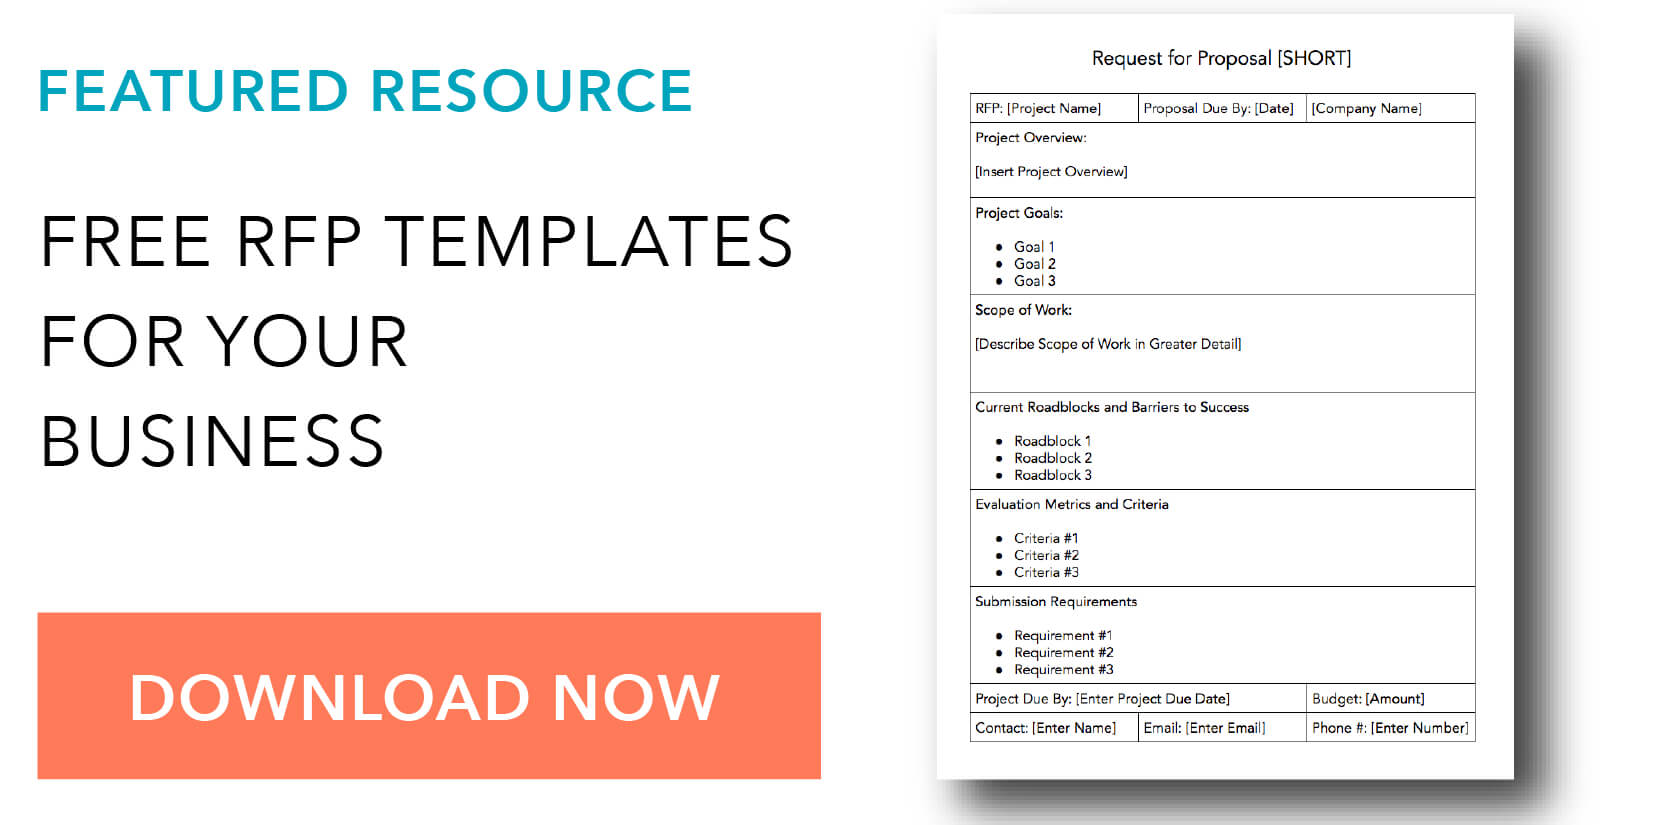 How To Write A Request For Proposal, With Template And Sample Pertaining To Call For Proposals Template